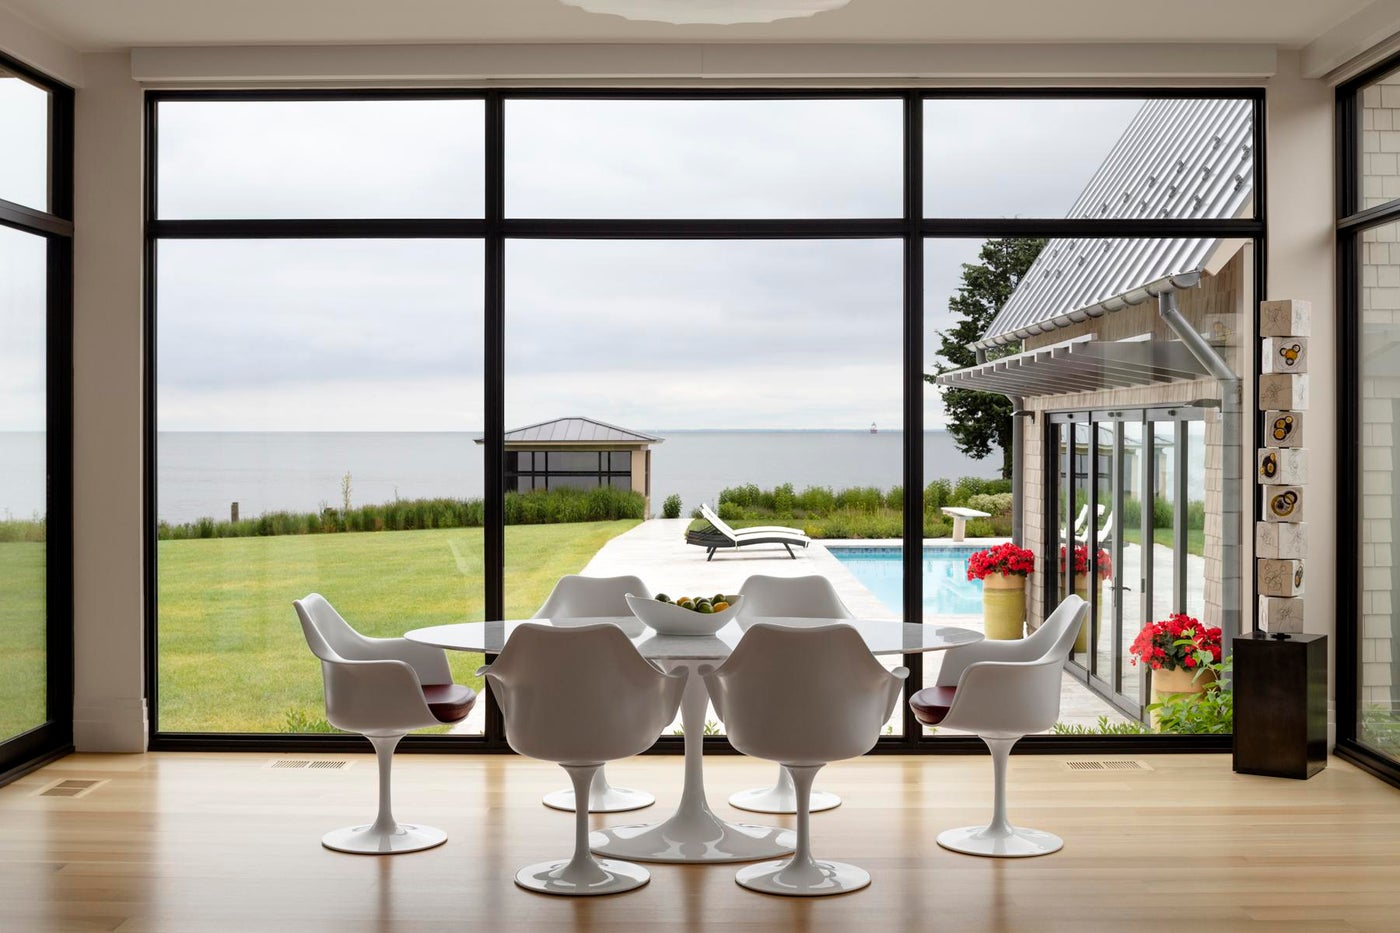 Waterfront House, a breakfast room with three glass walls